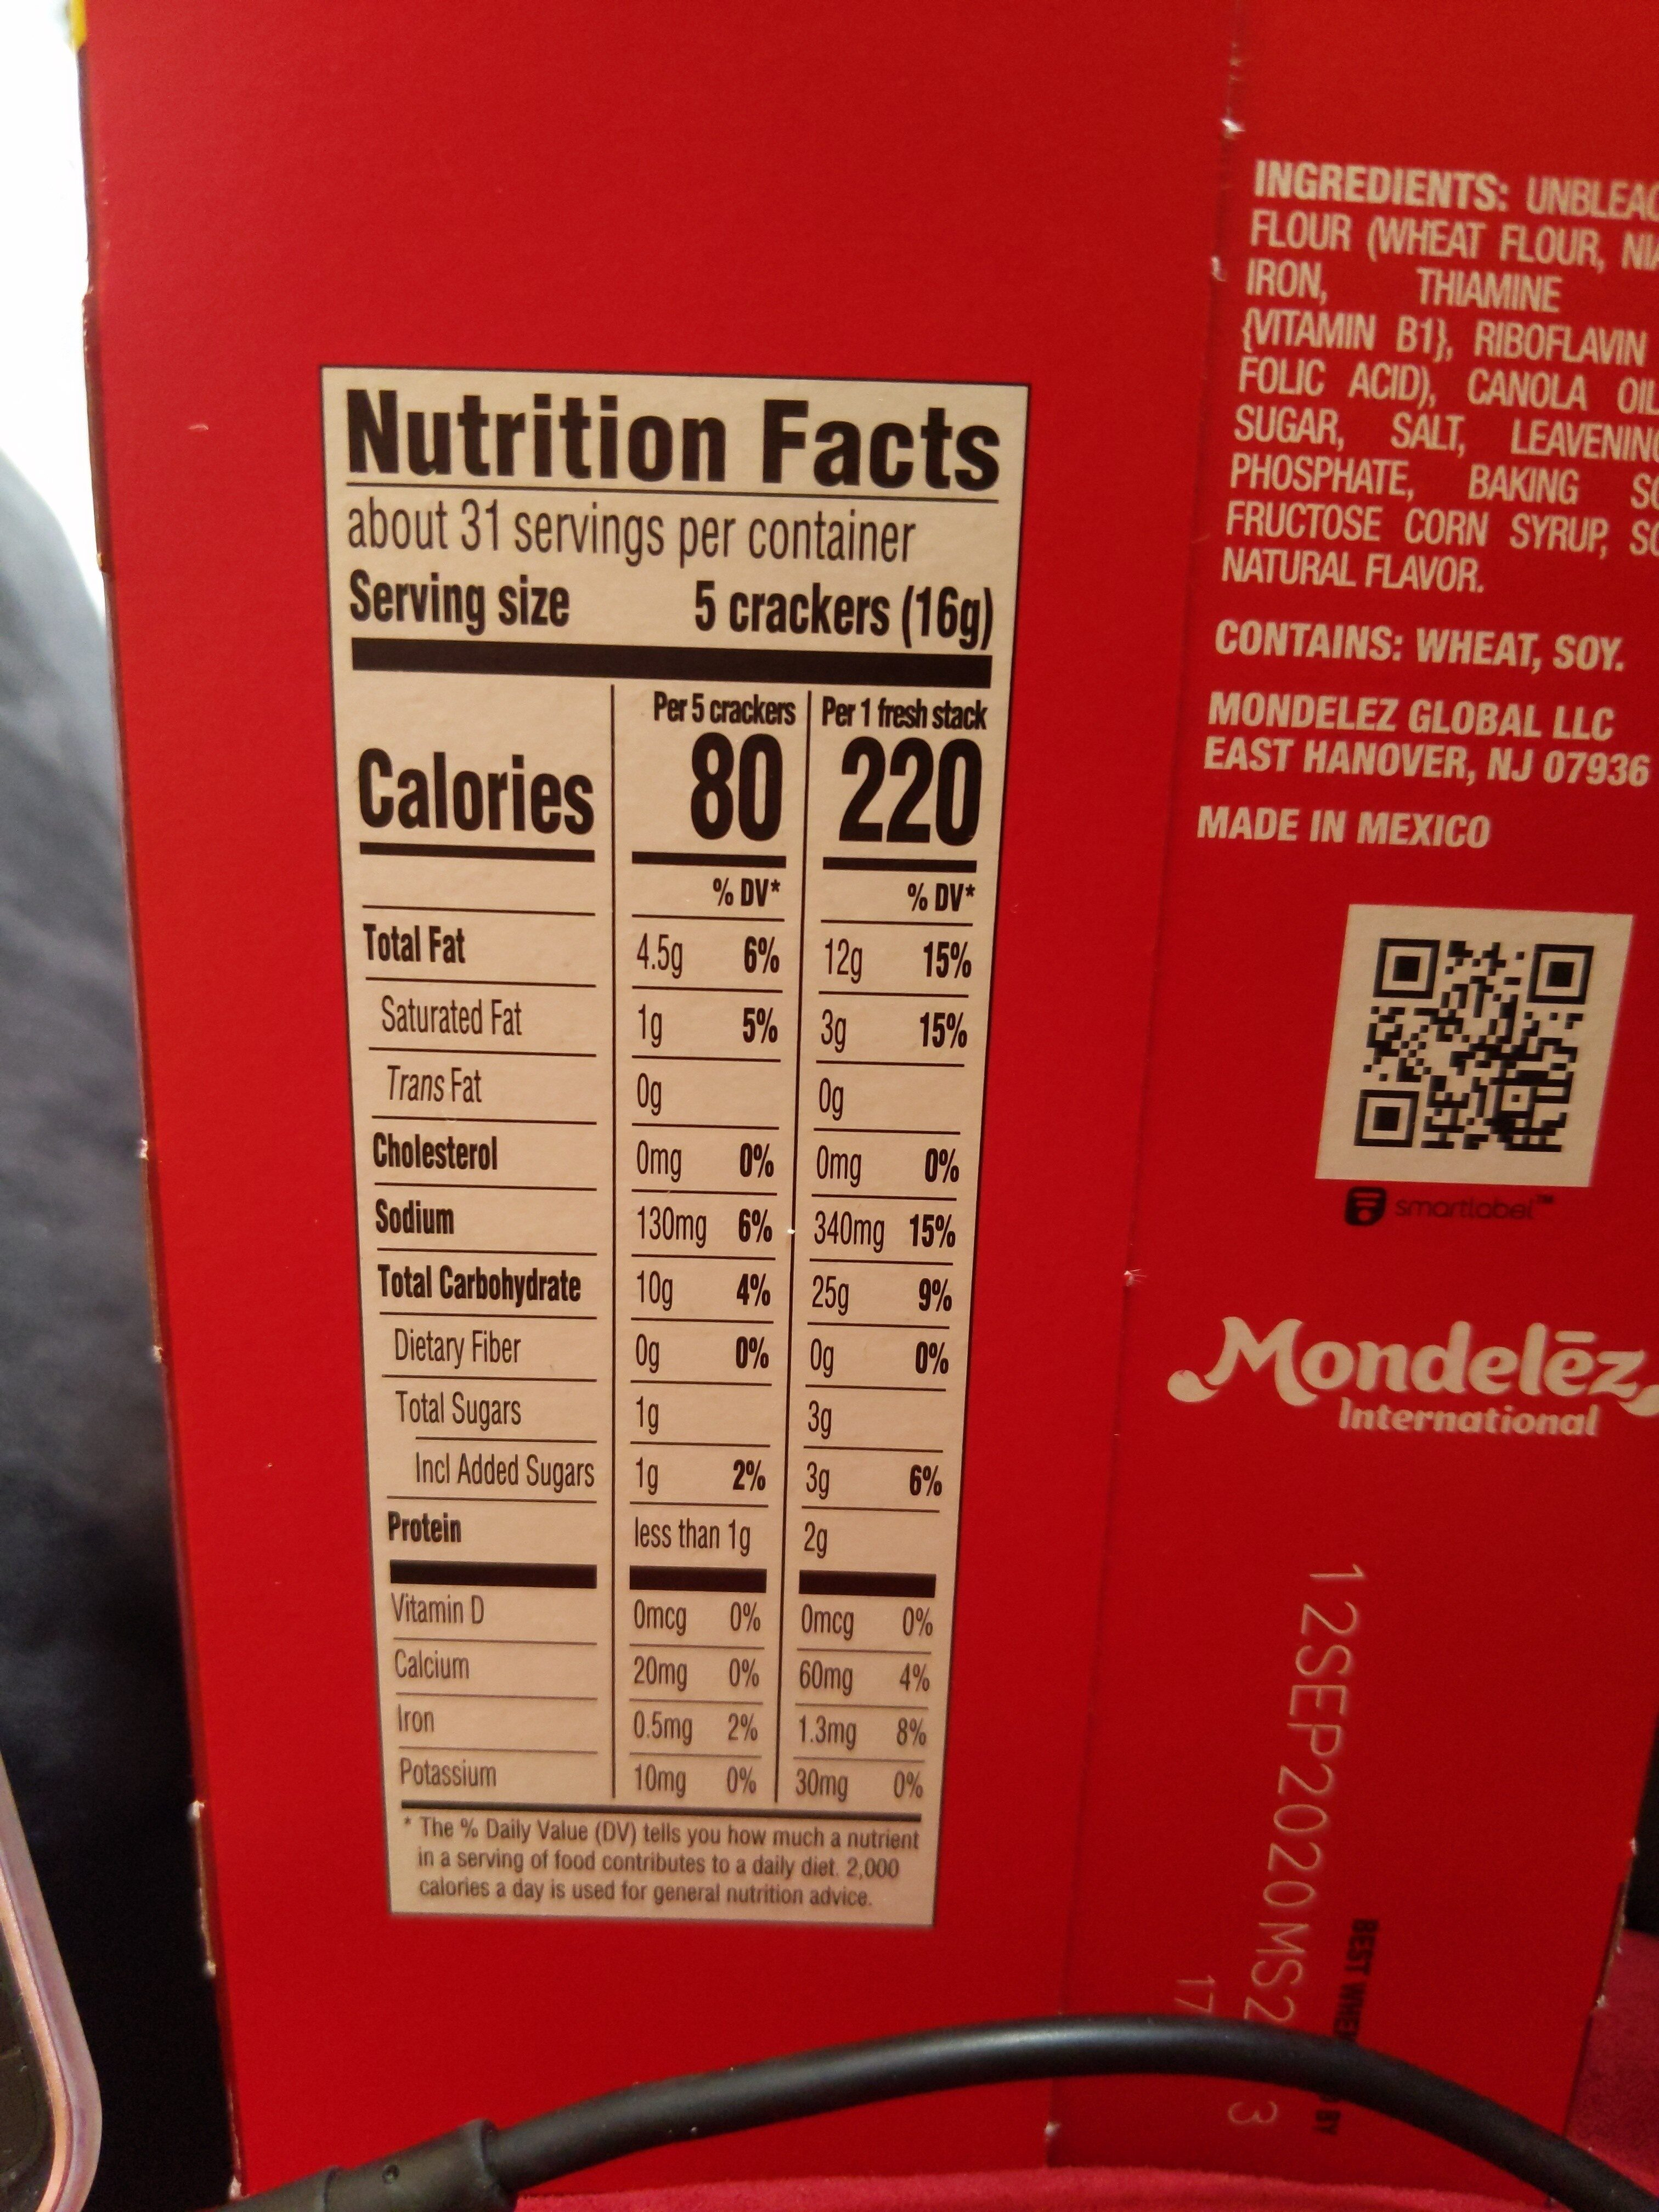 Ritz crackers family size fresh stacks 1x17.8 oz - Nutrition facts - en